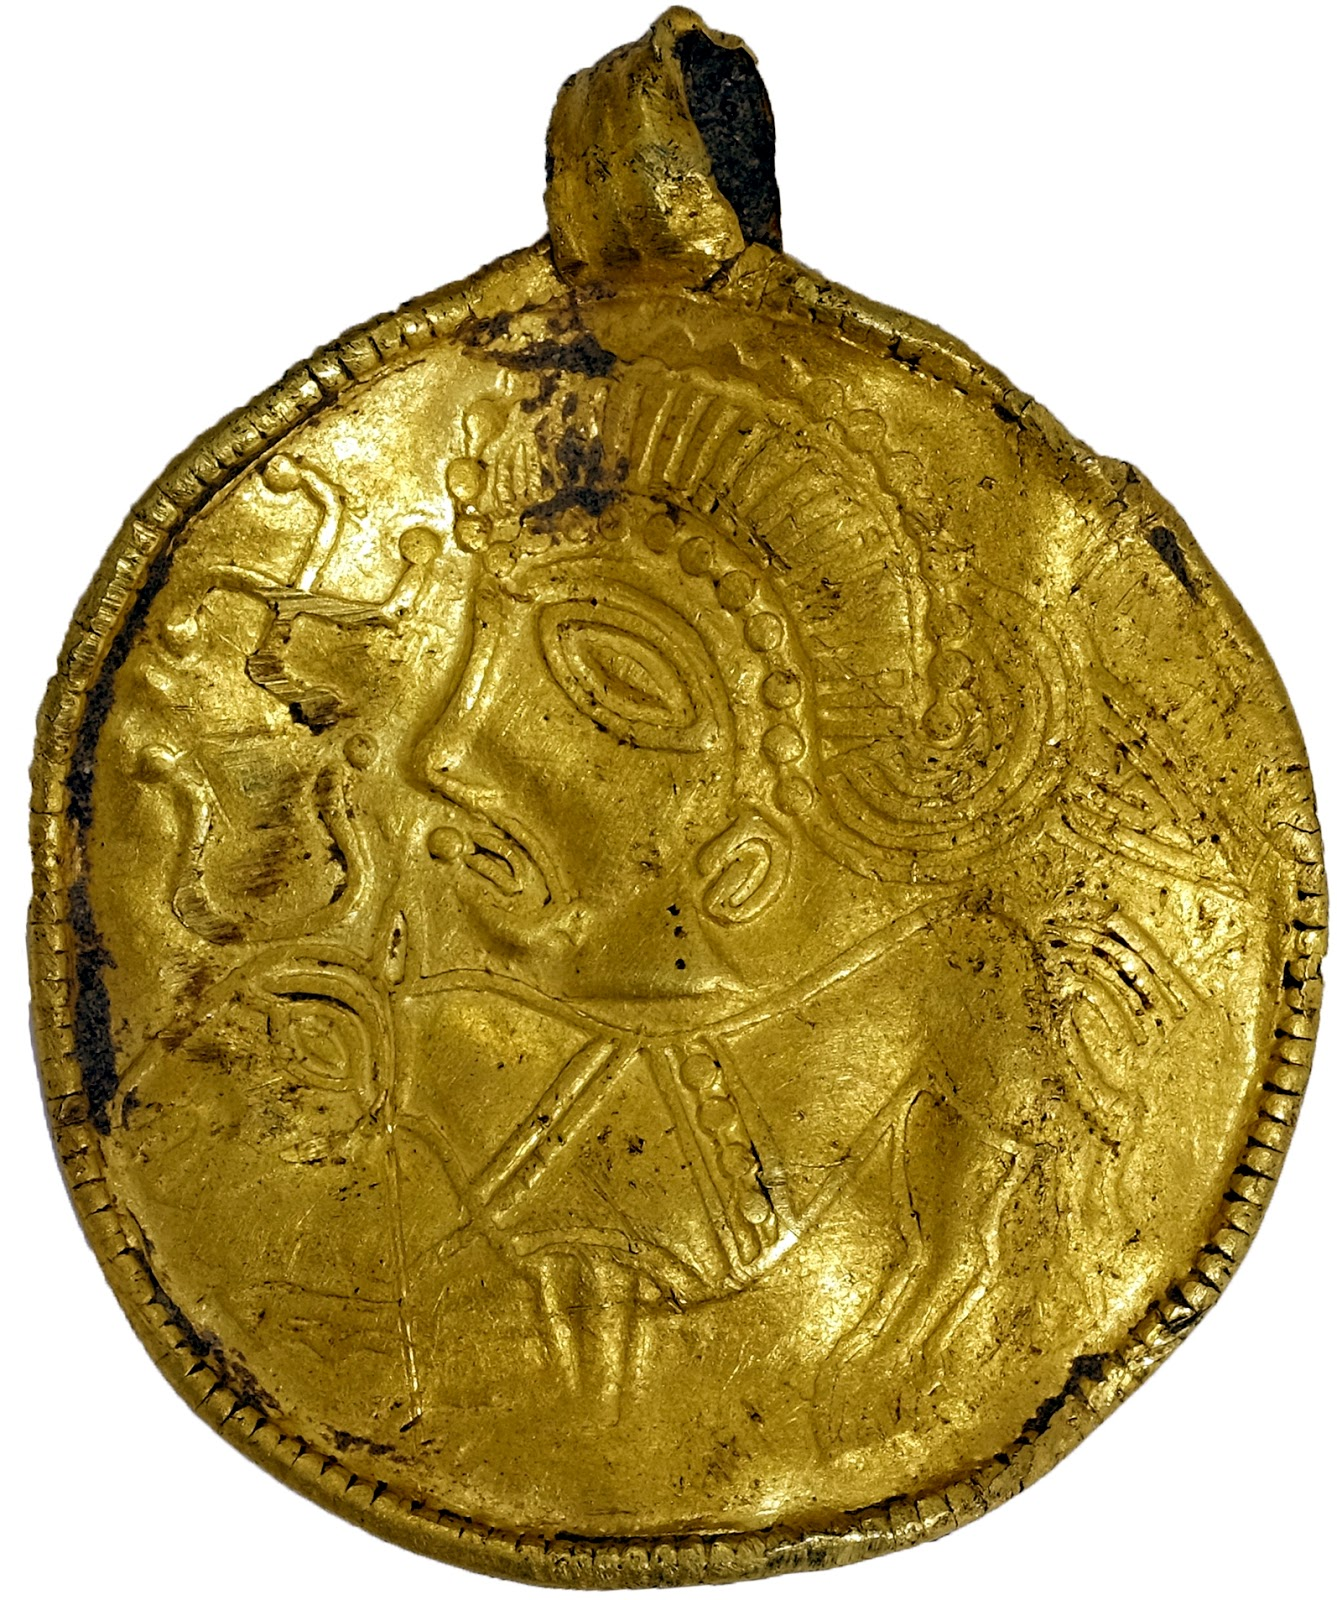 rare 1 500 year old odin amulet found in denmark the archaeology